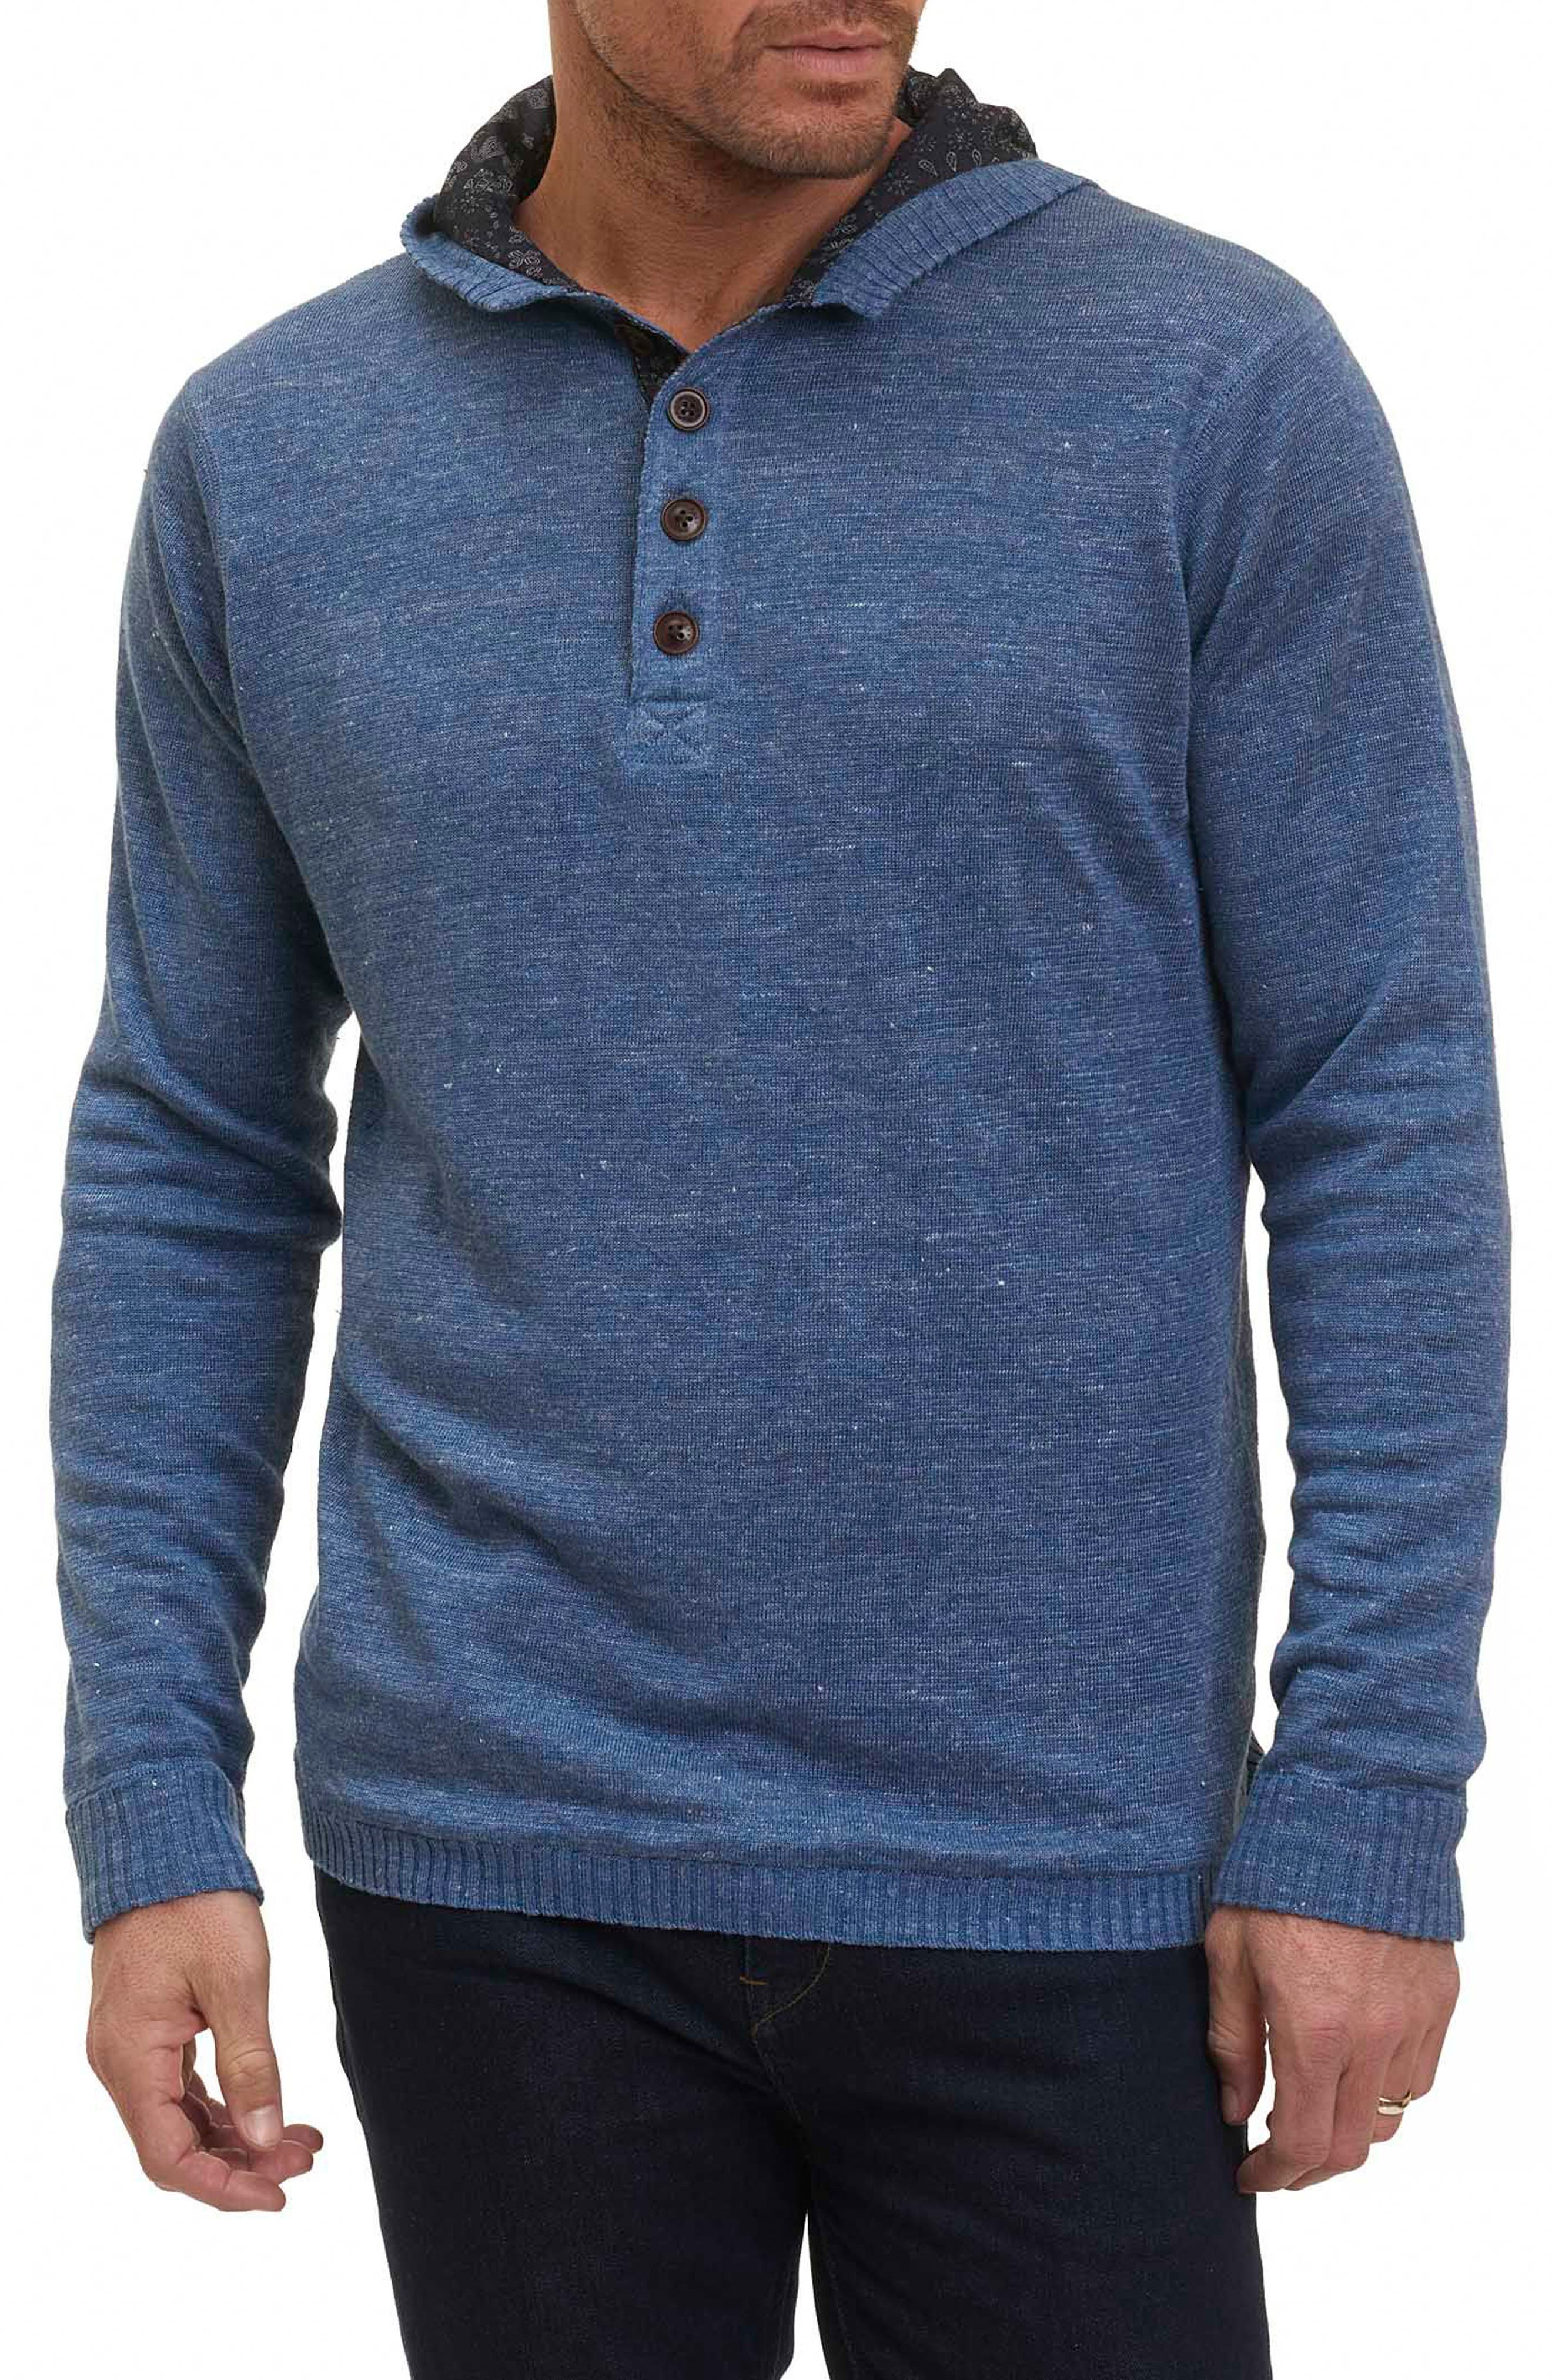 Indus River Sweater Hoodie,                         Main,                         color, Blue